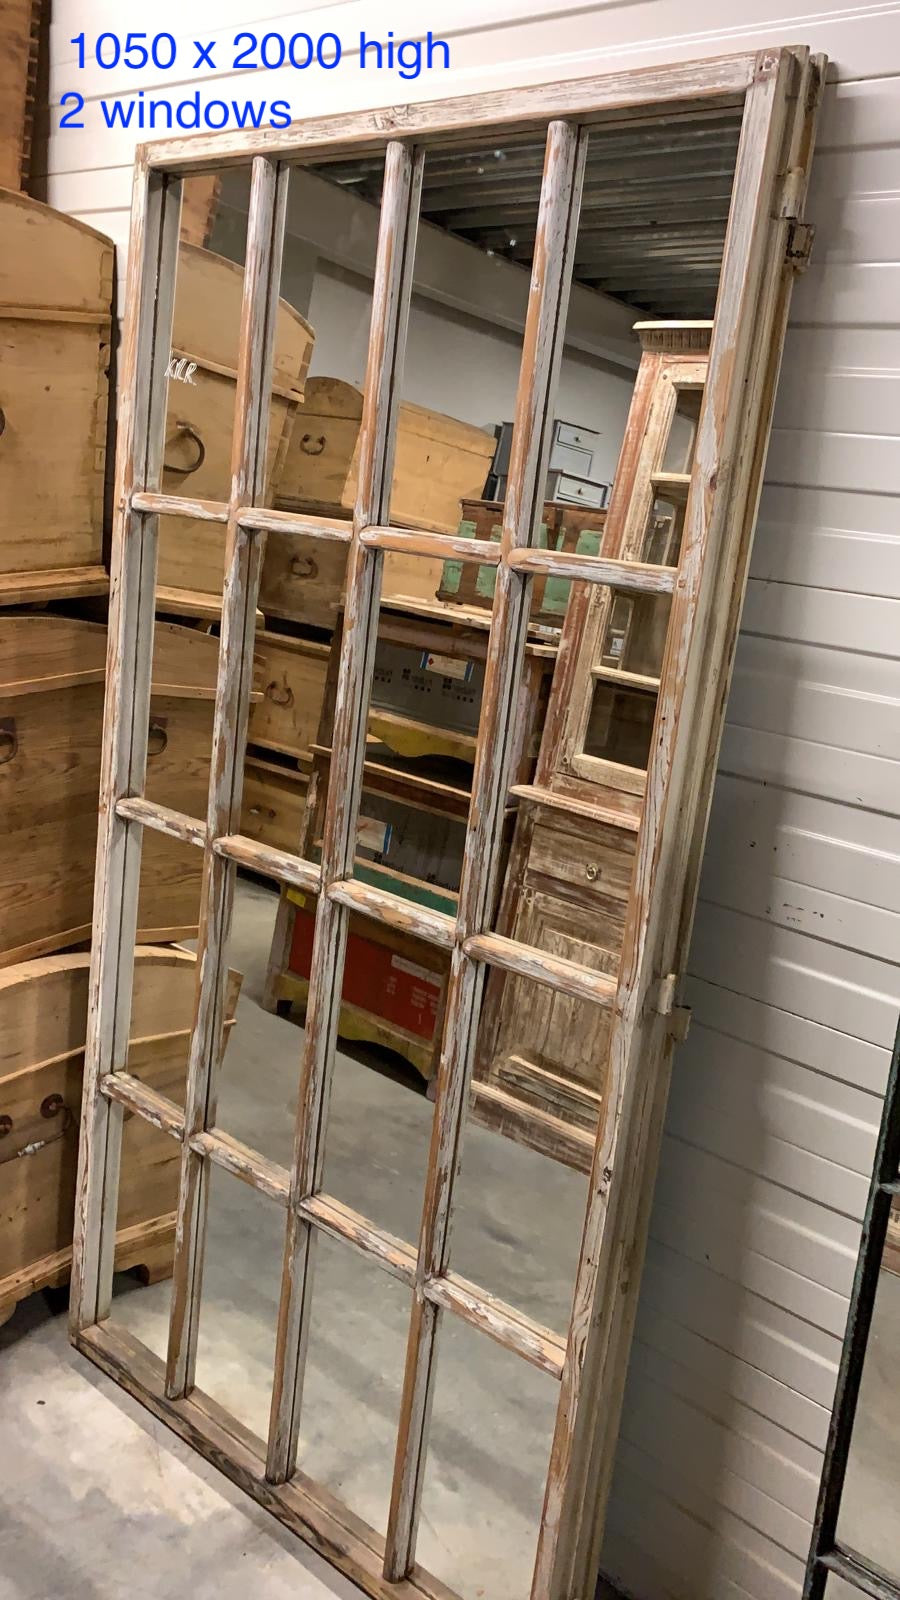 Vintage French wooden window MIRROR # 2715 April container